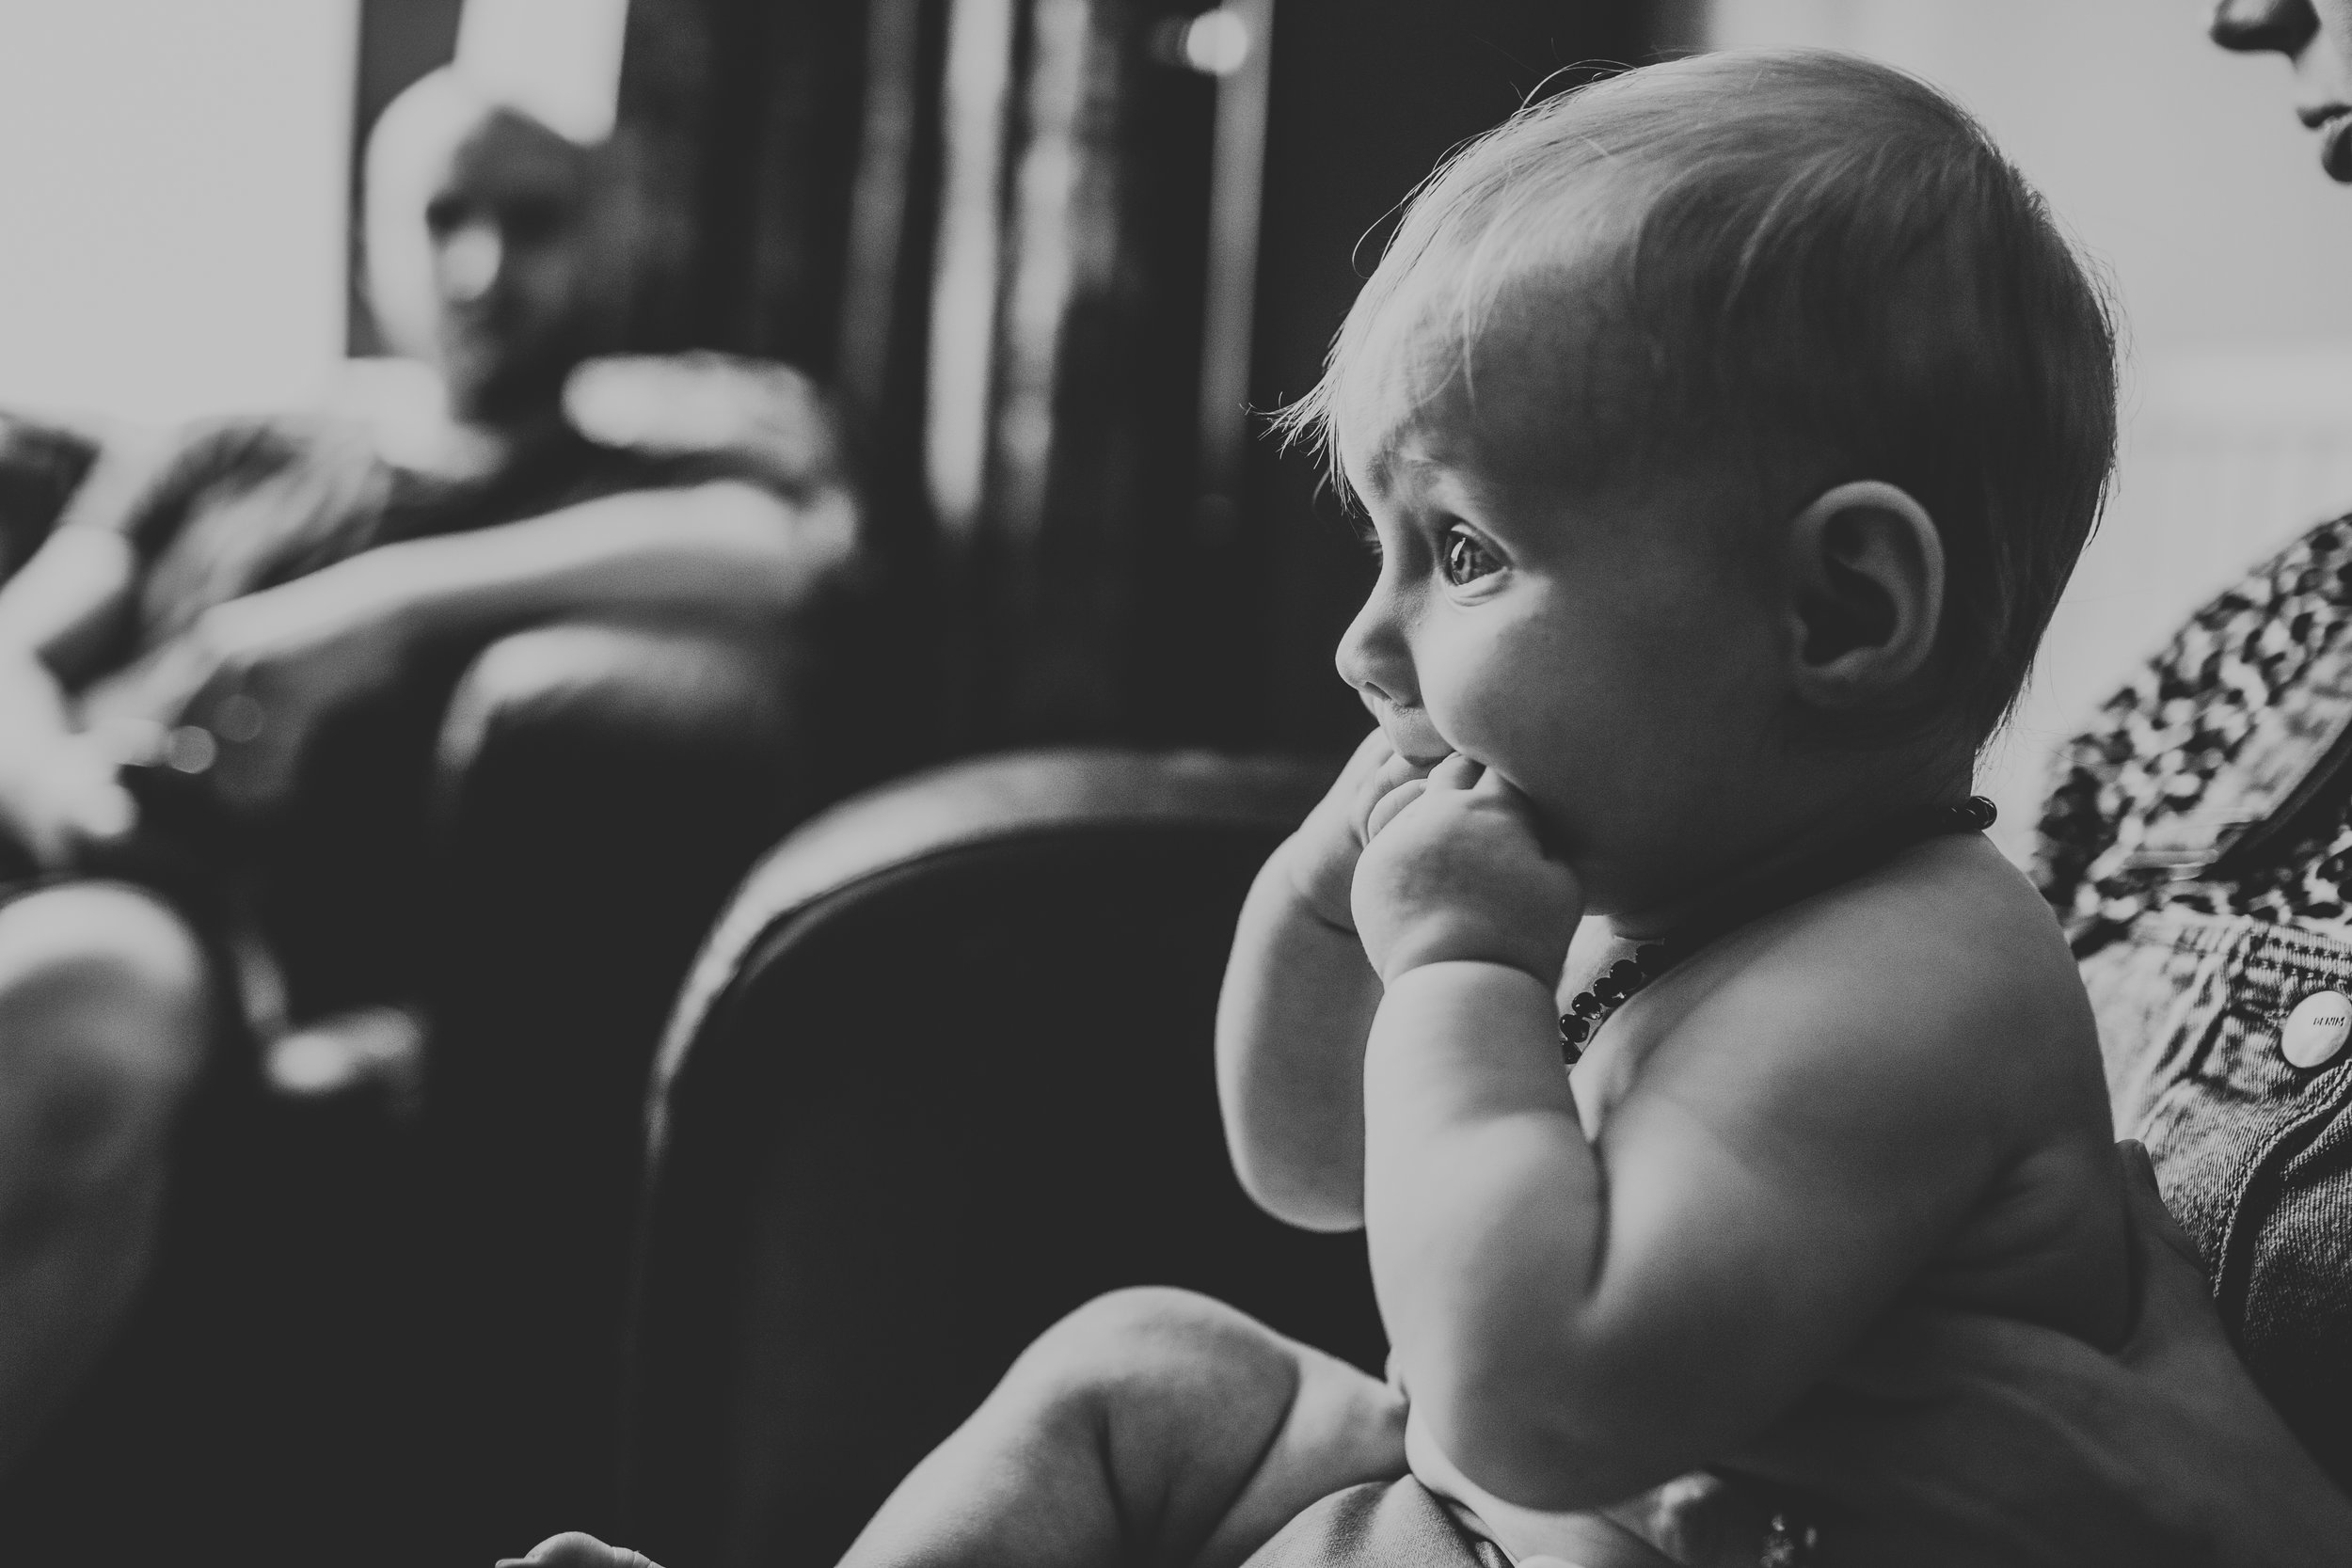 Baby watching formula one in black and white.